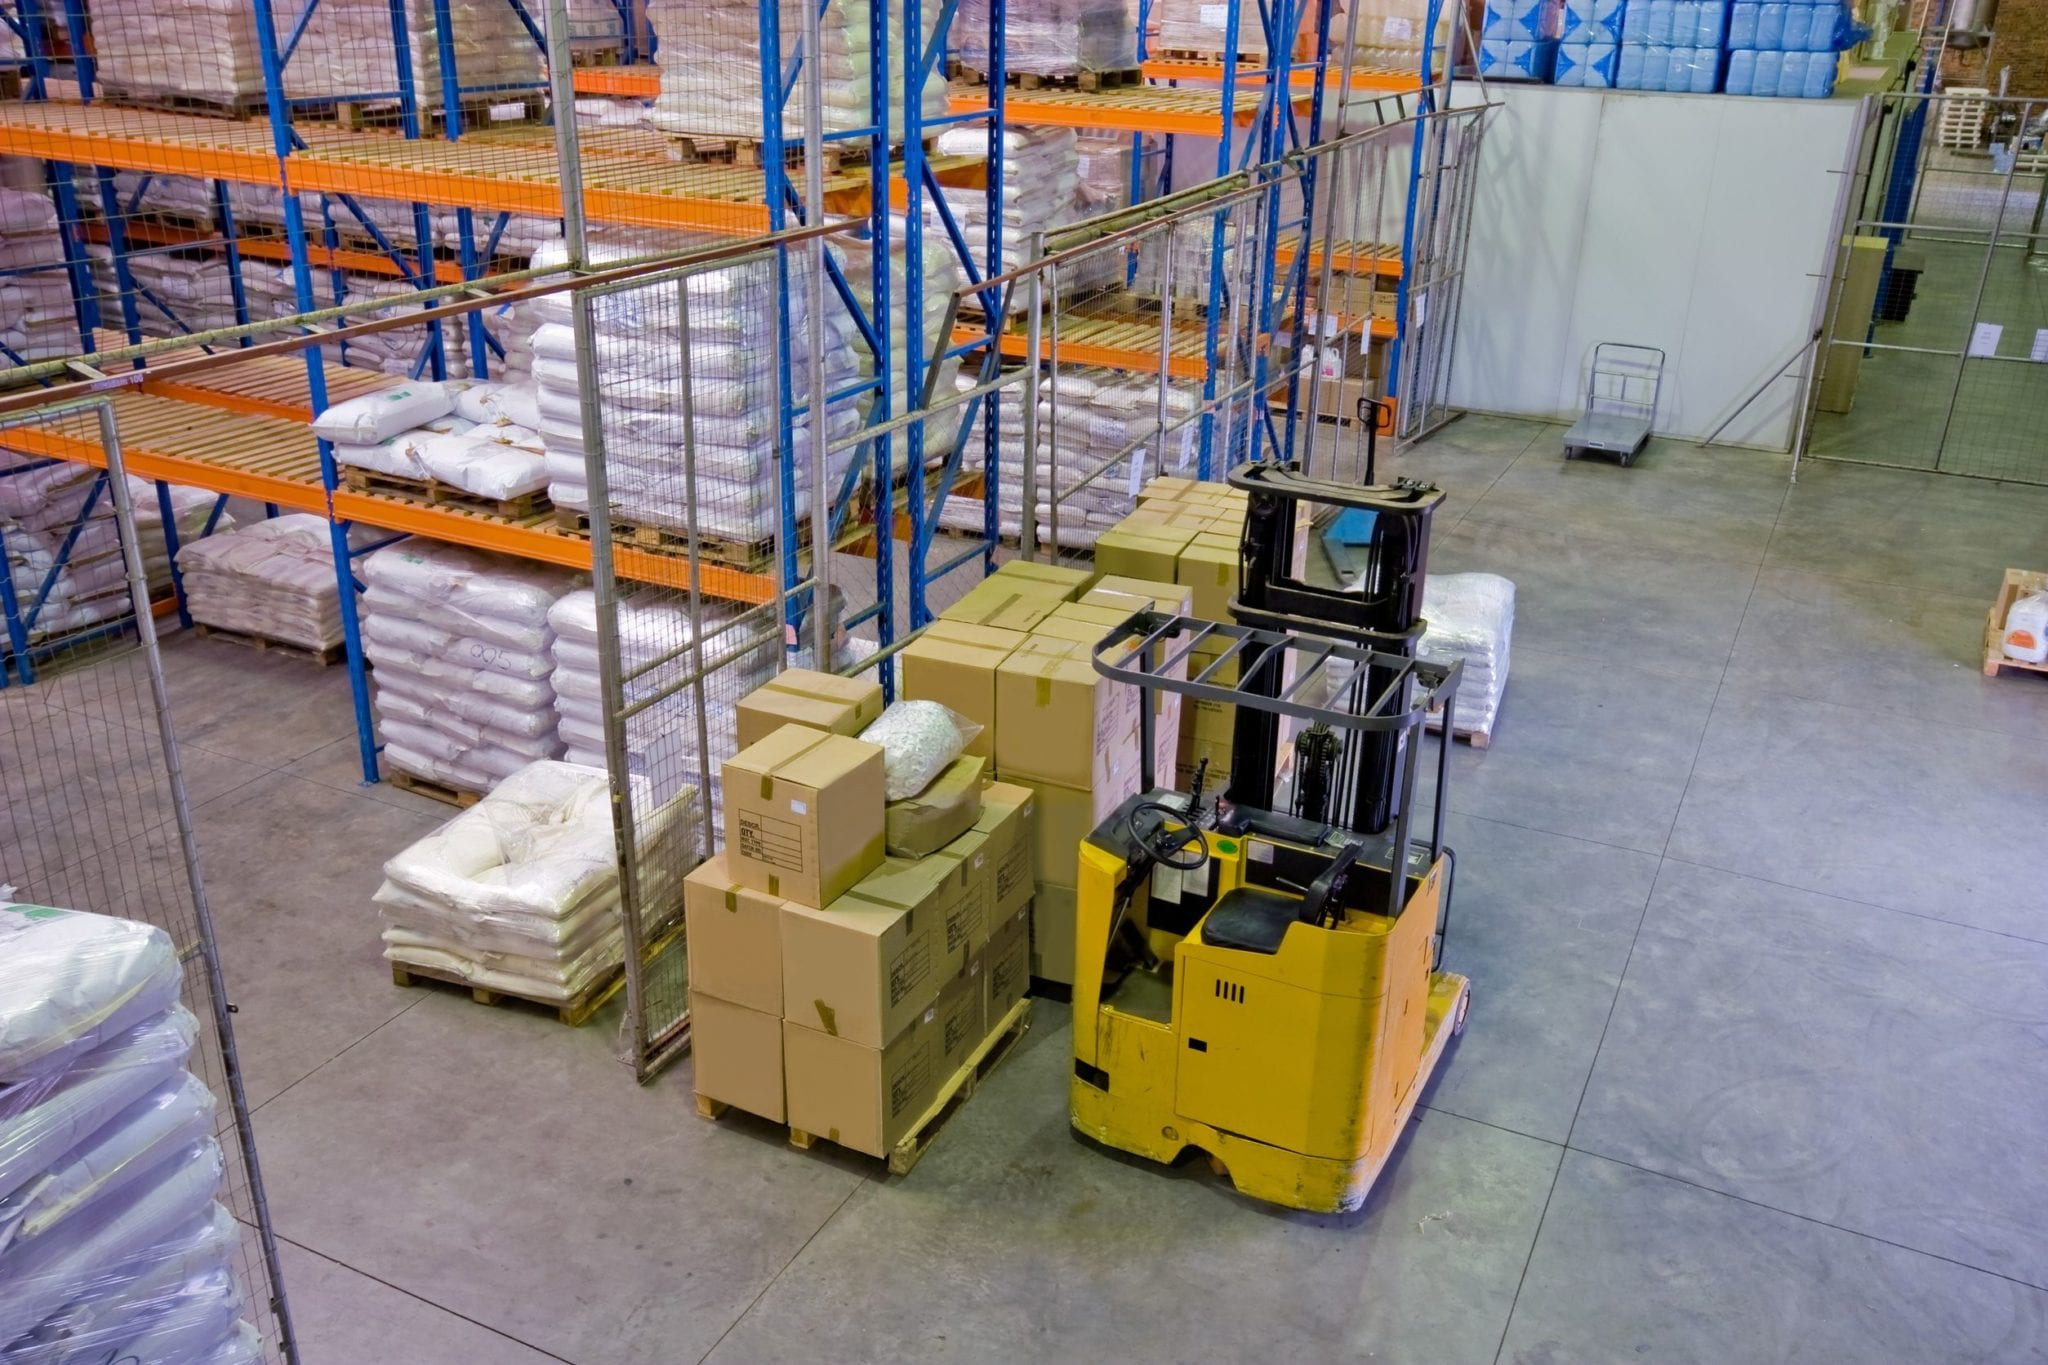 Forklift Parked In Warehouse Stock Photo